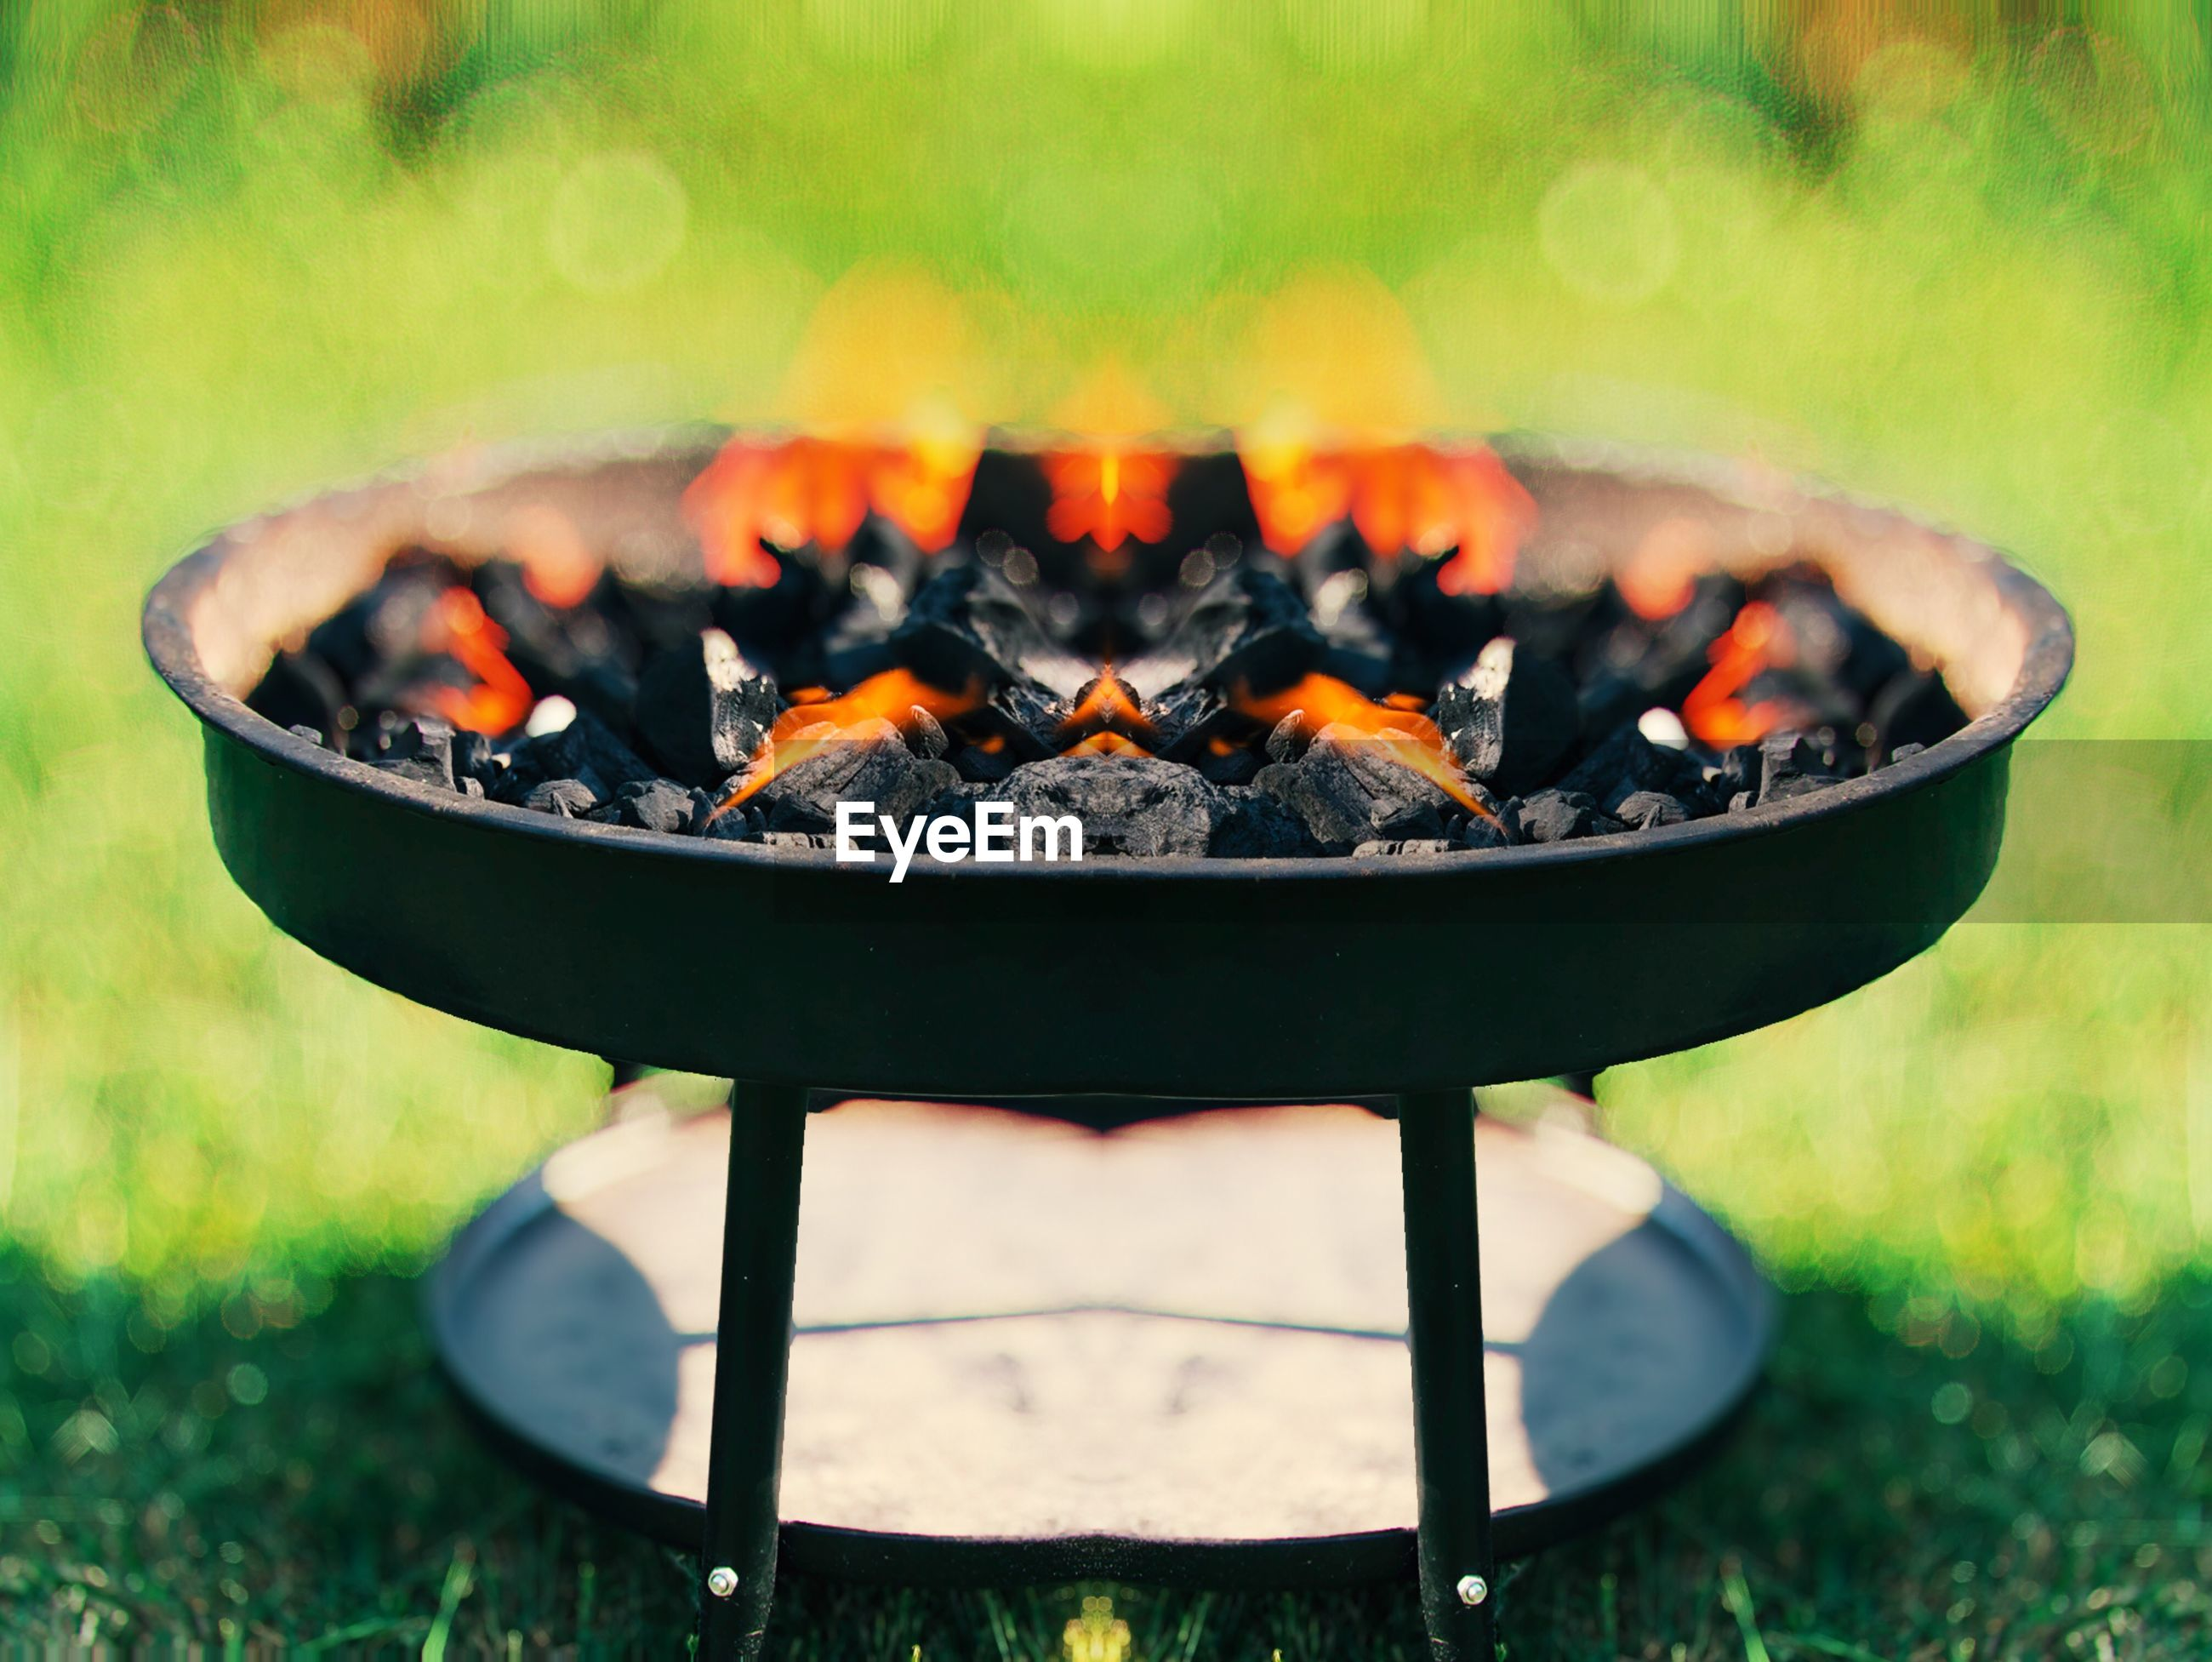 CLOSE-UP OF BARBECUE GRILL